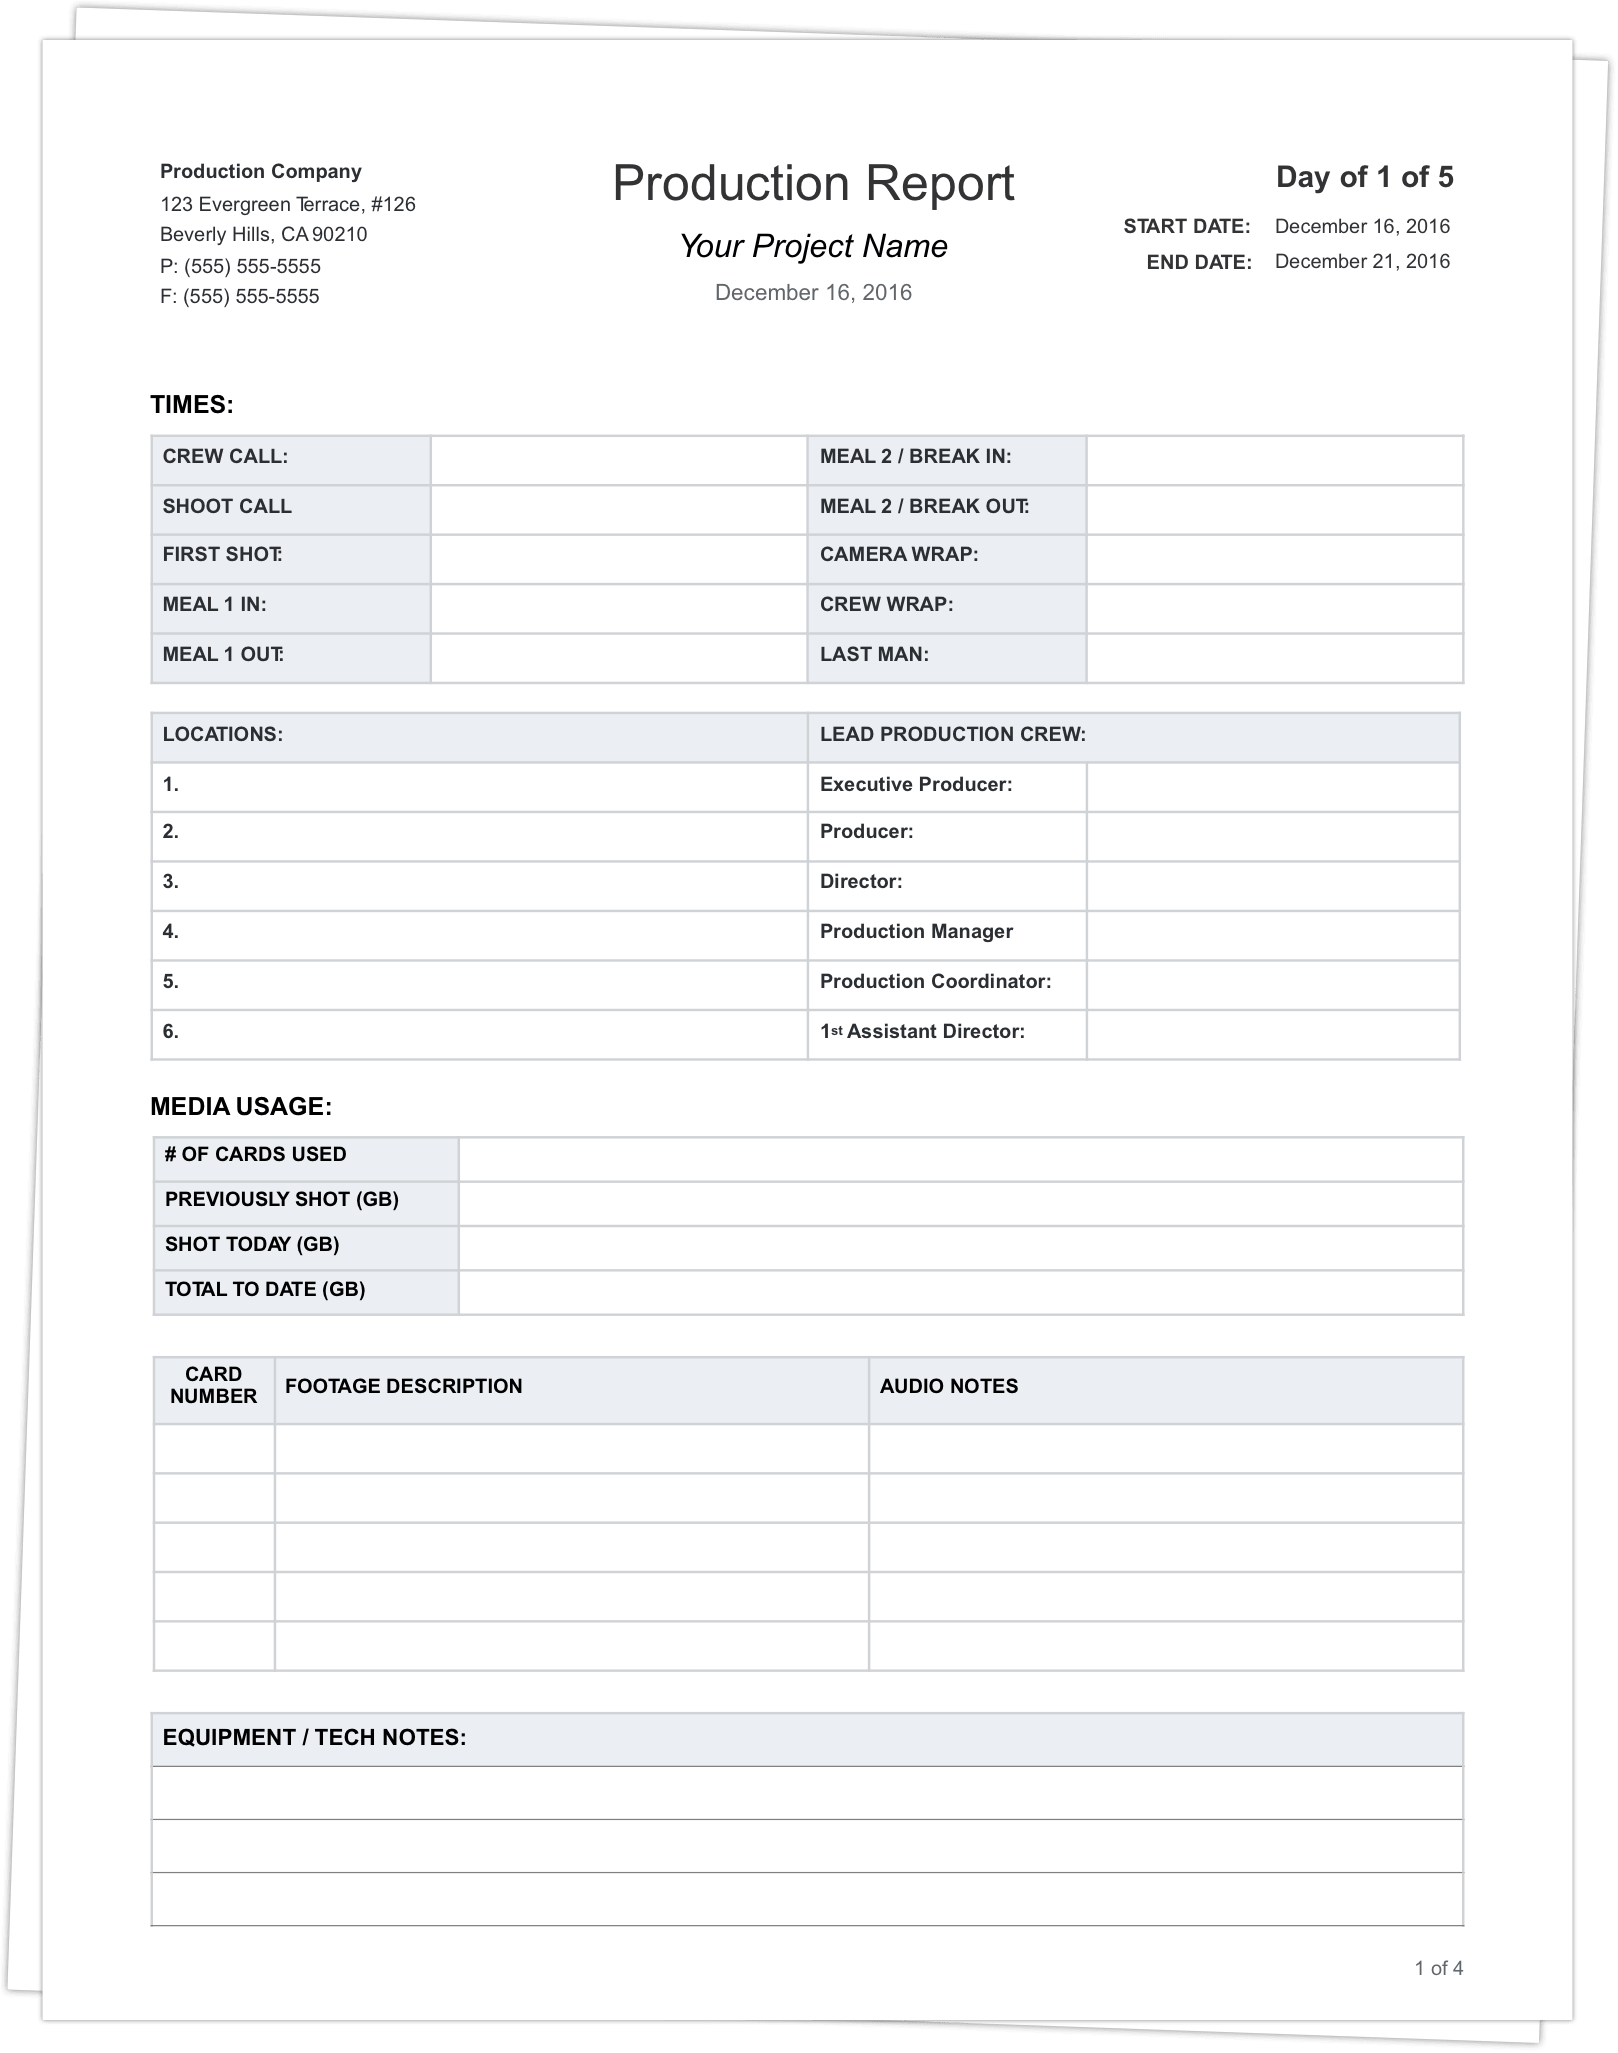 Download FREE Daily Production Report Template